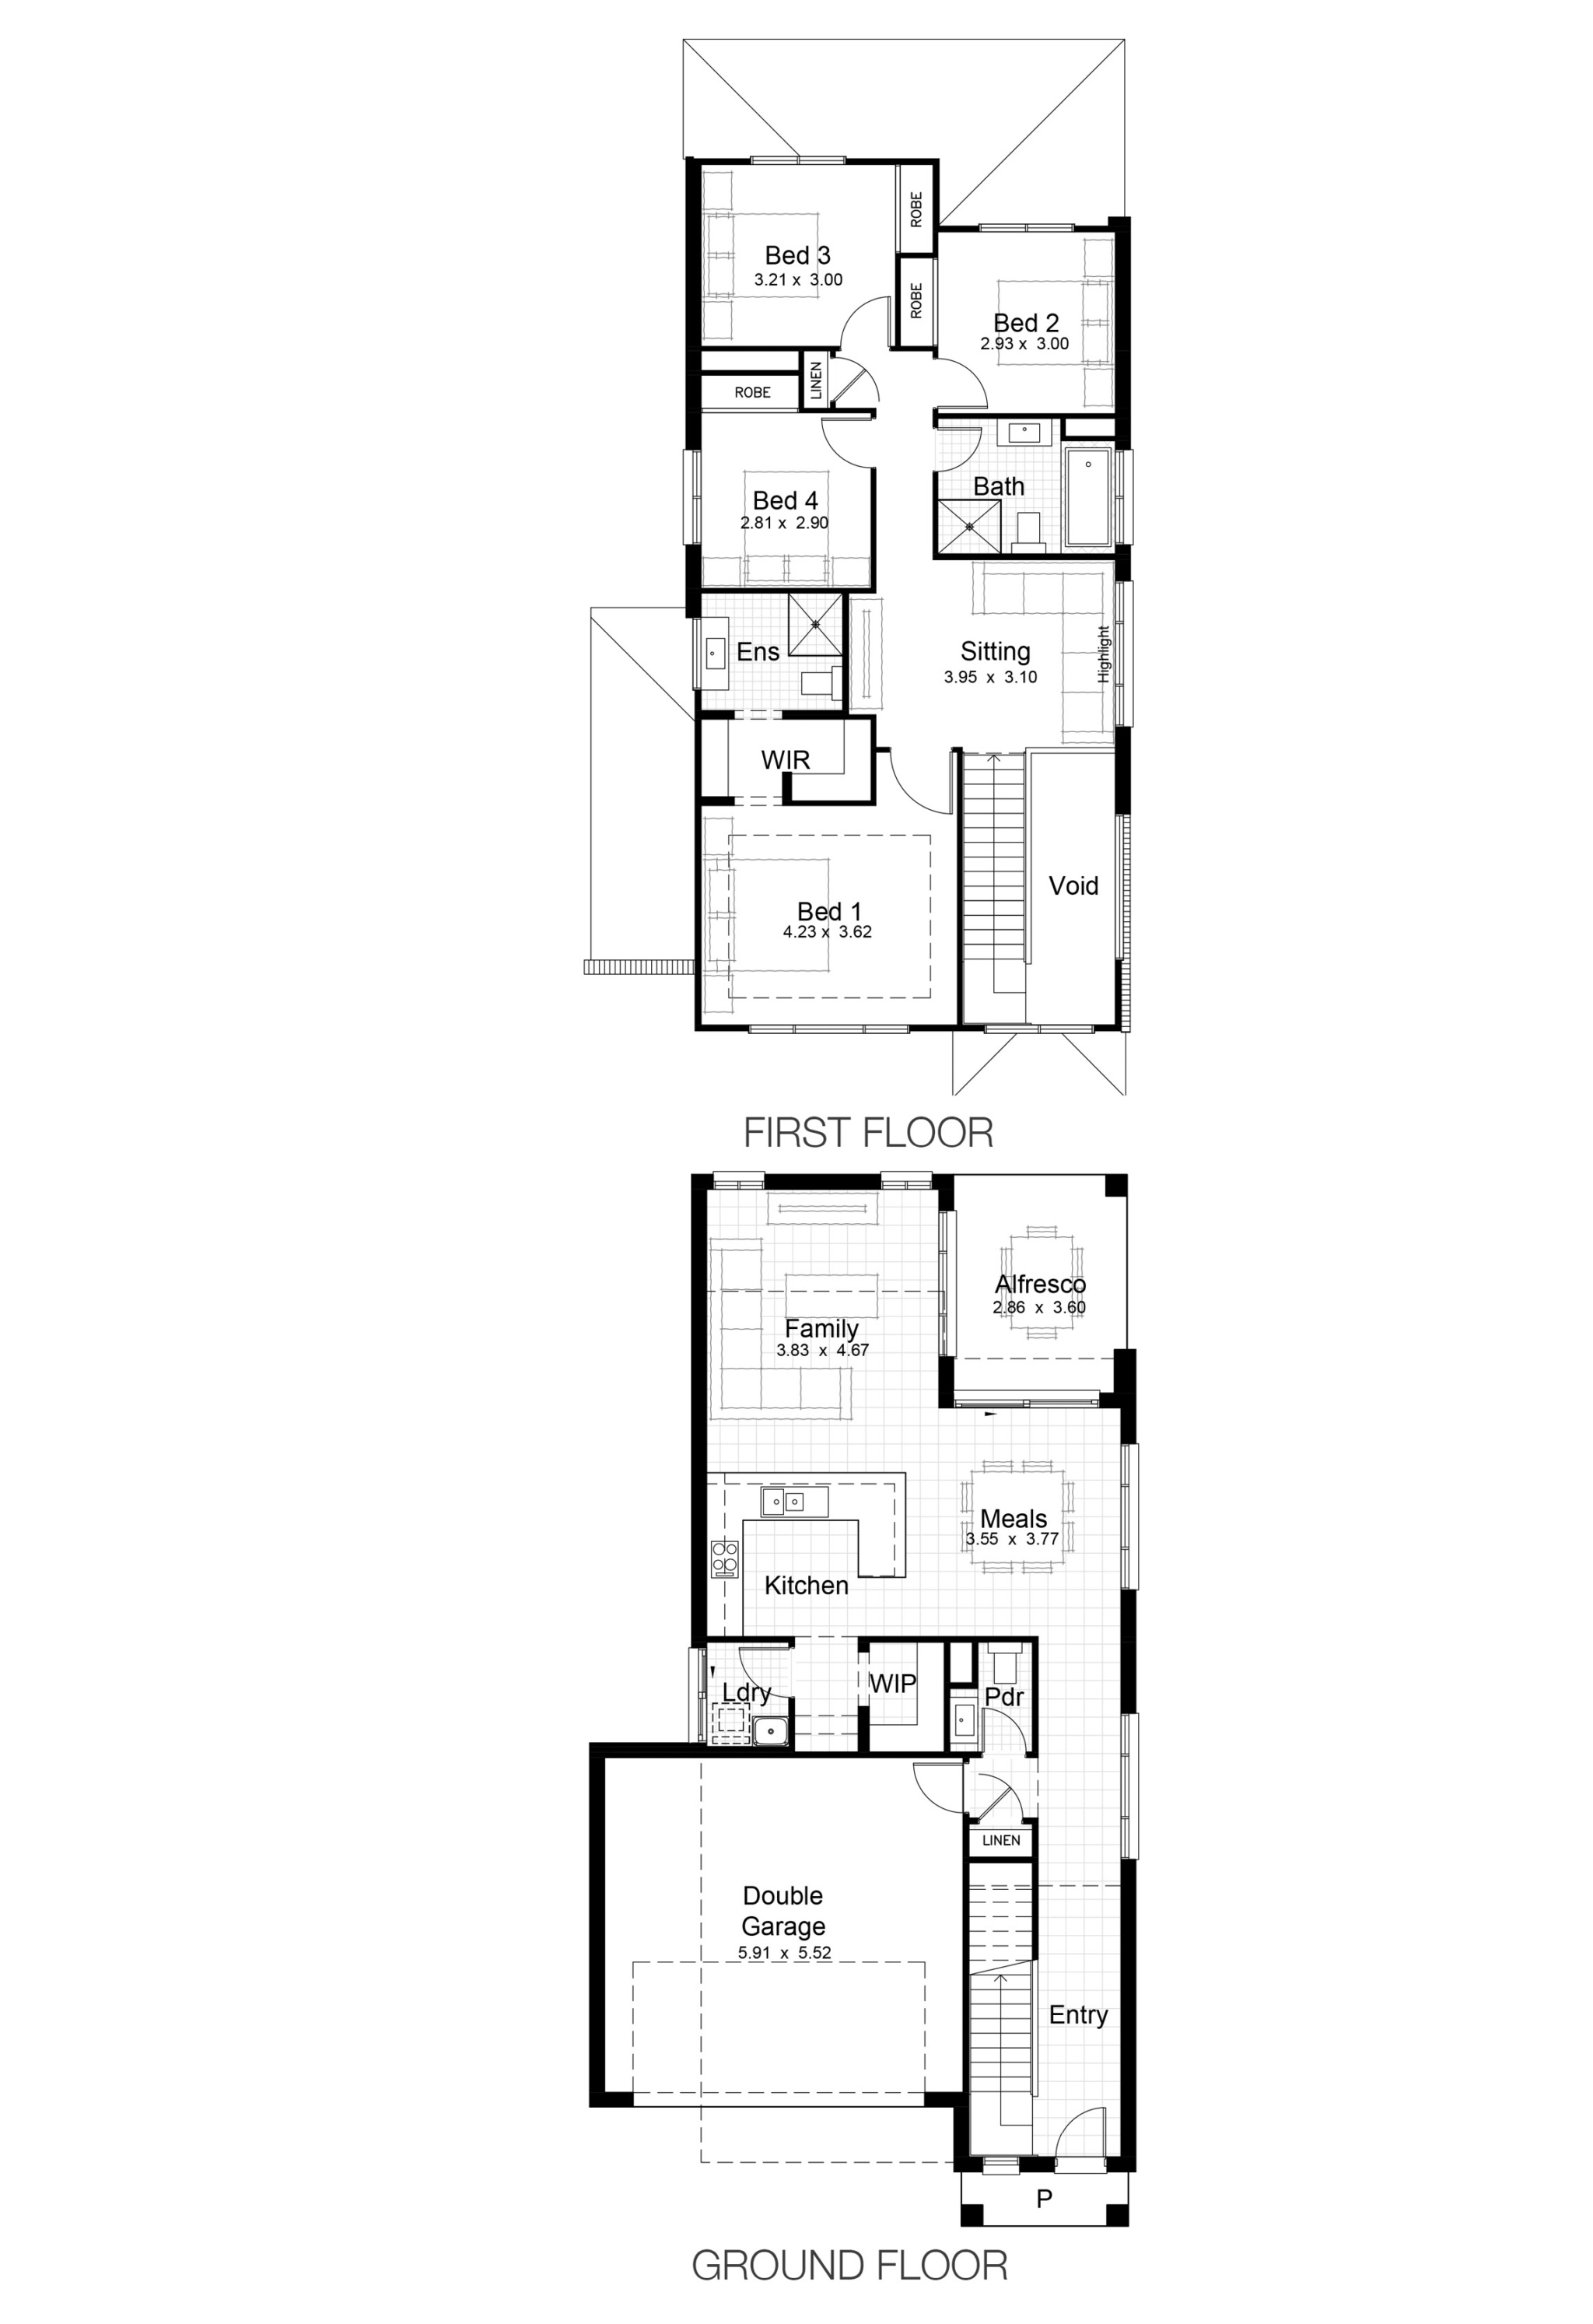 Single Level Plan_Lot 31